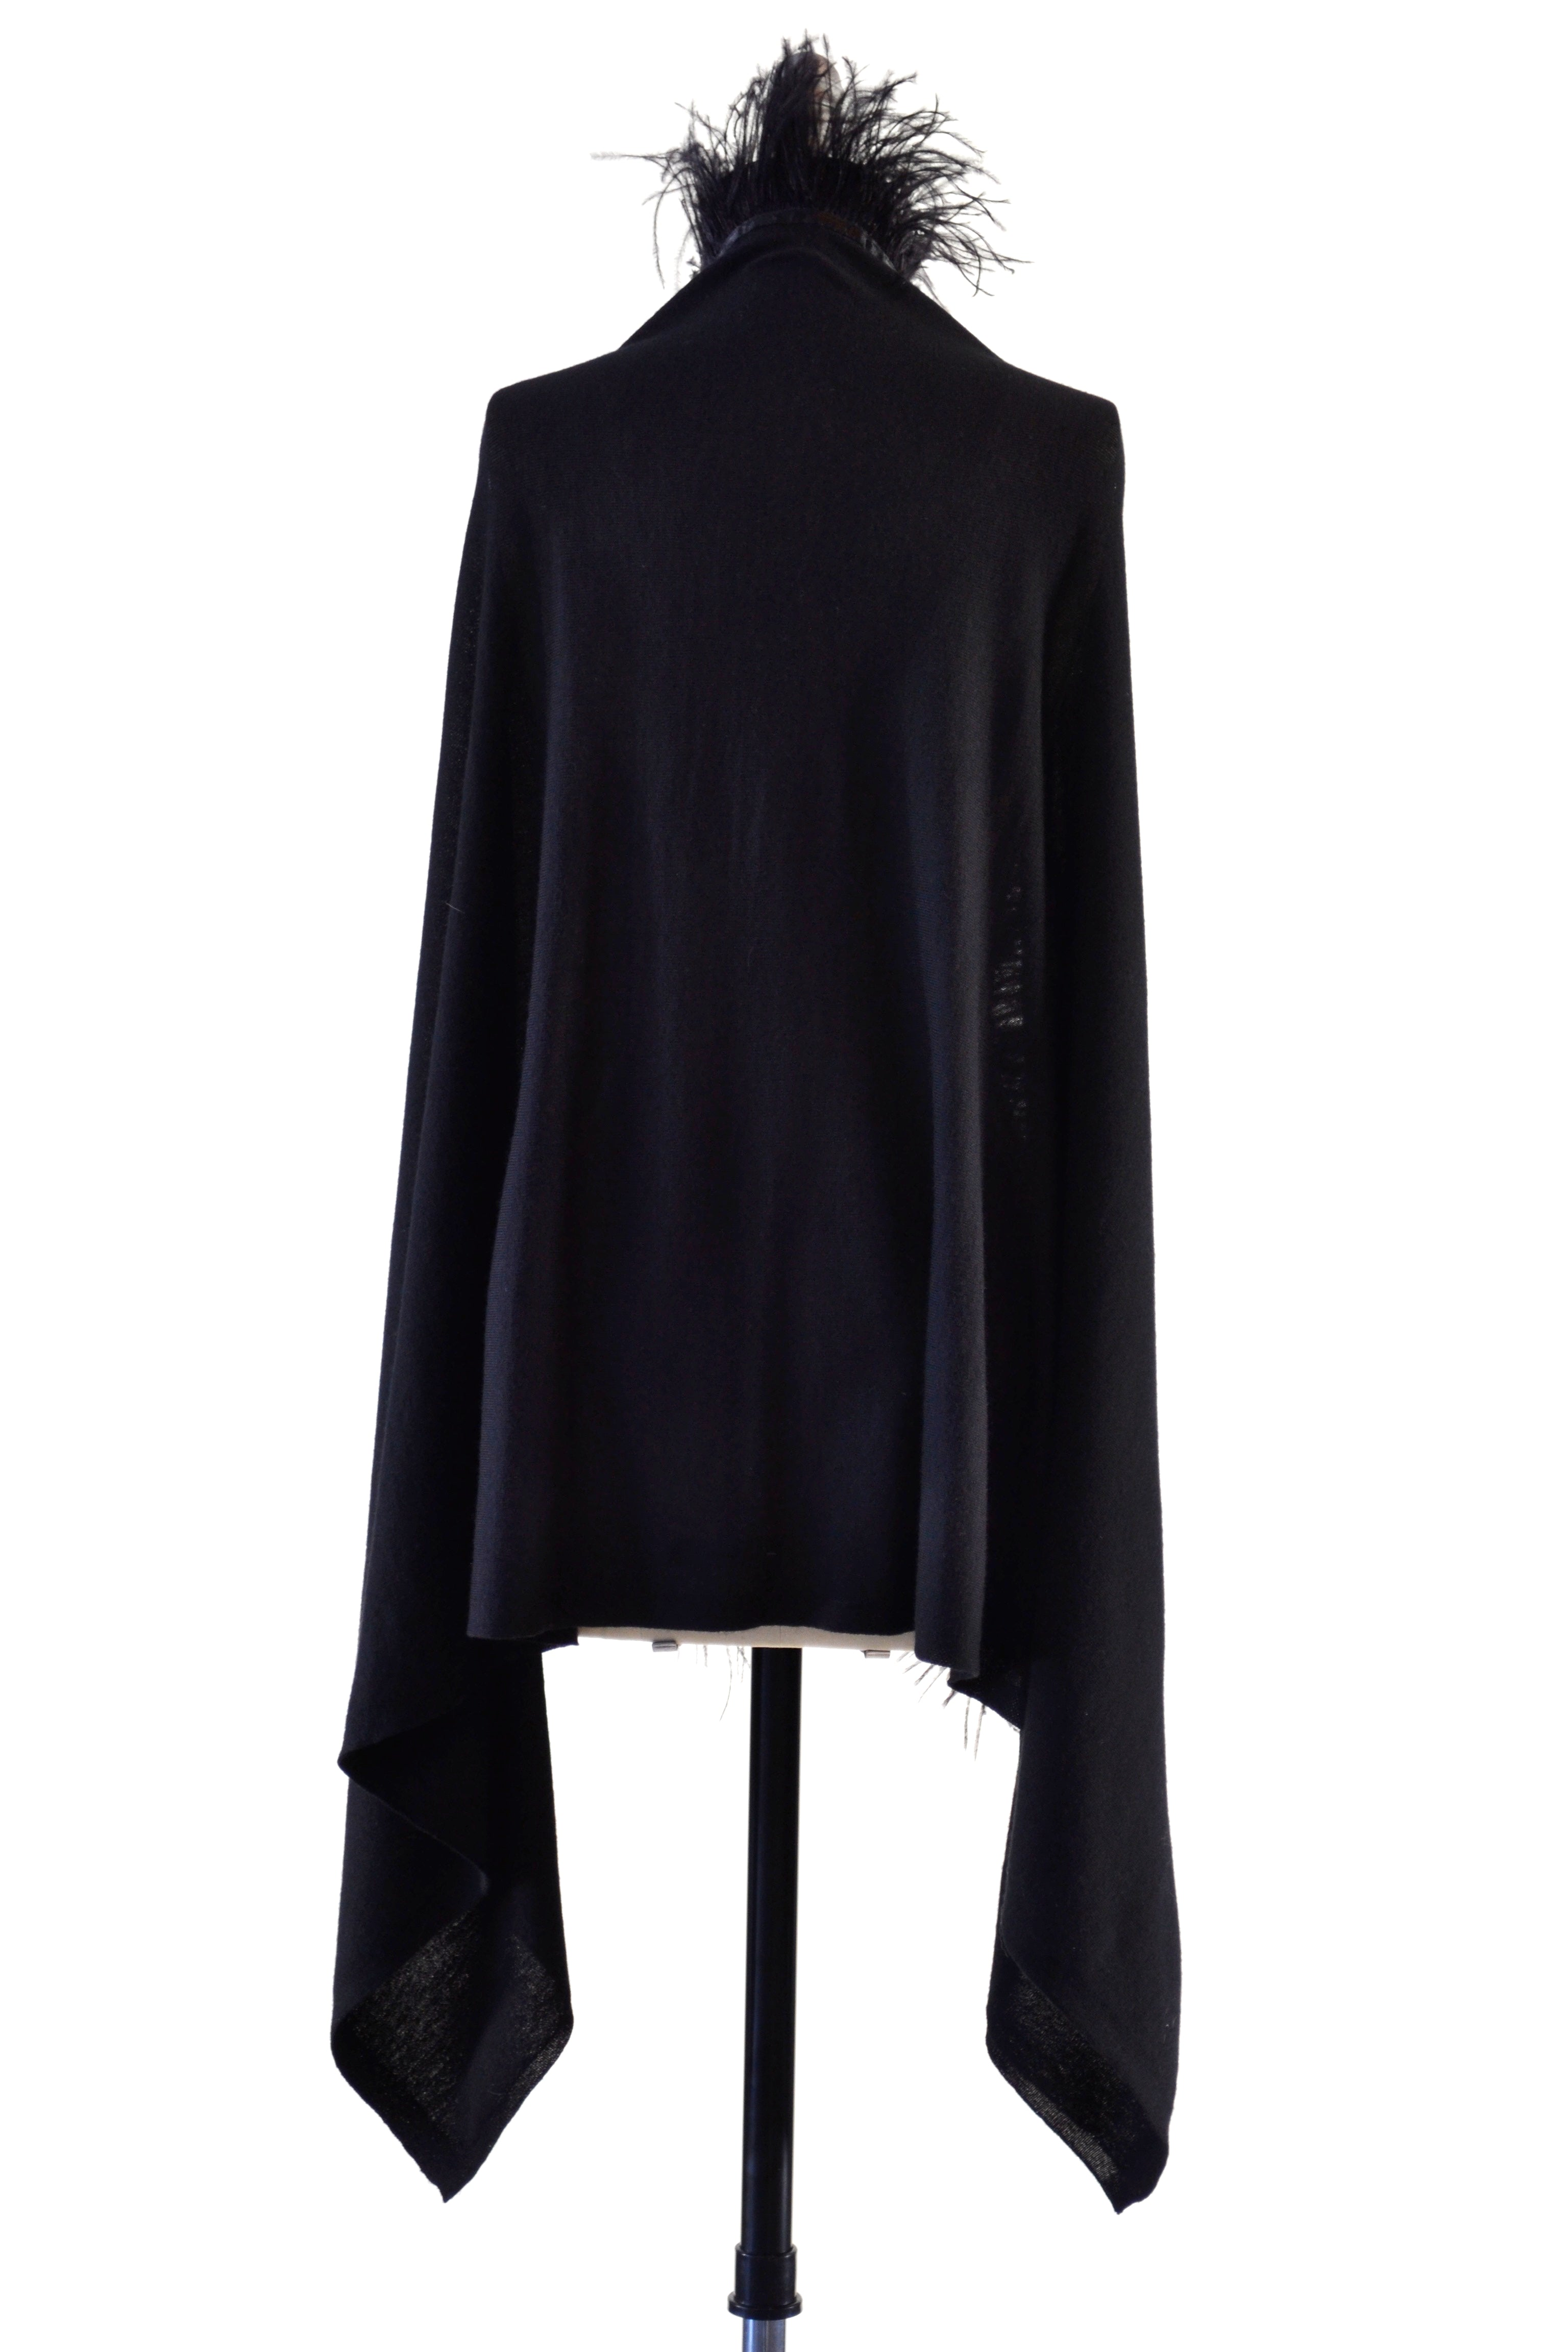 Fine Cashmere Wrap with Long Ostrich Feathers in Black